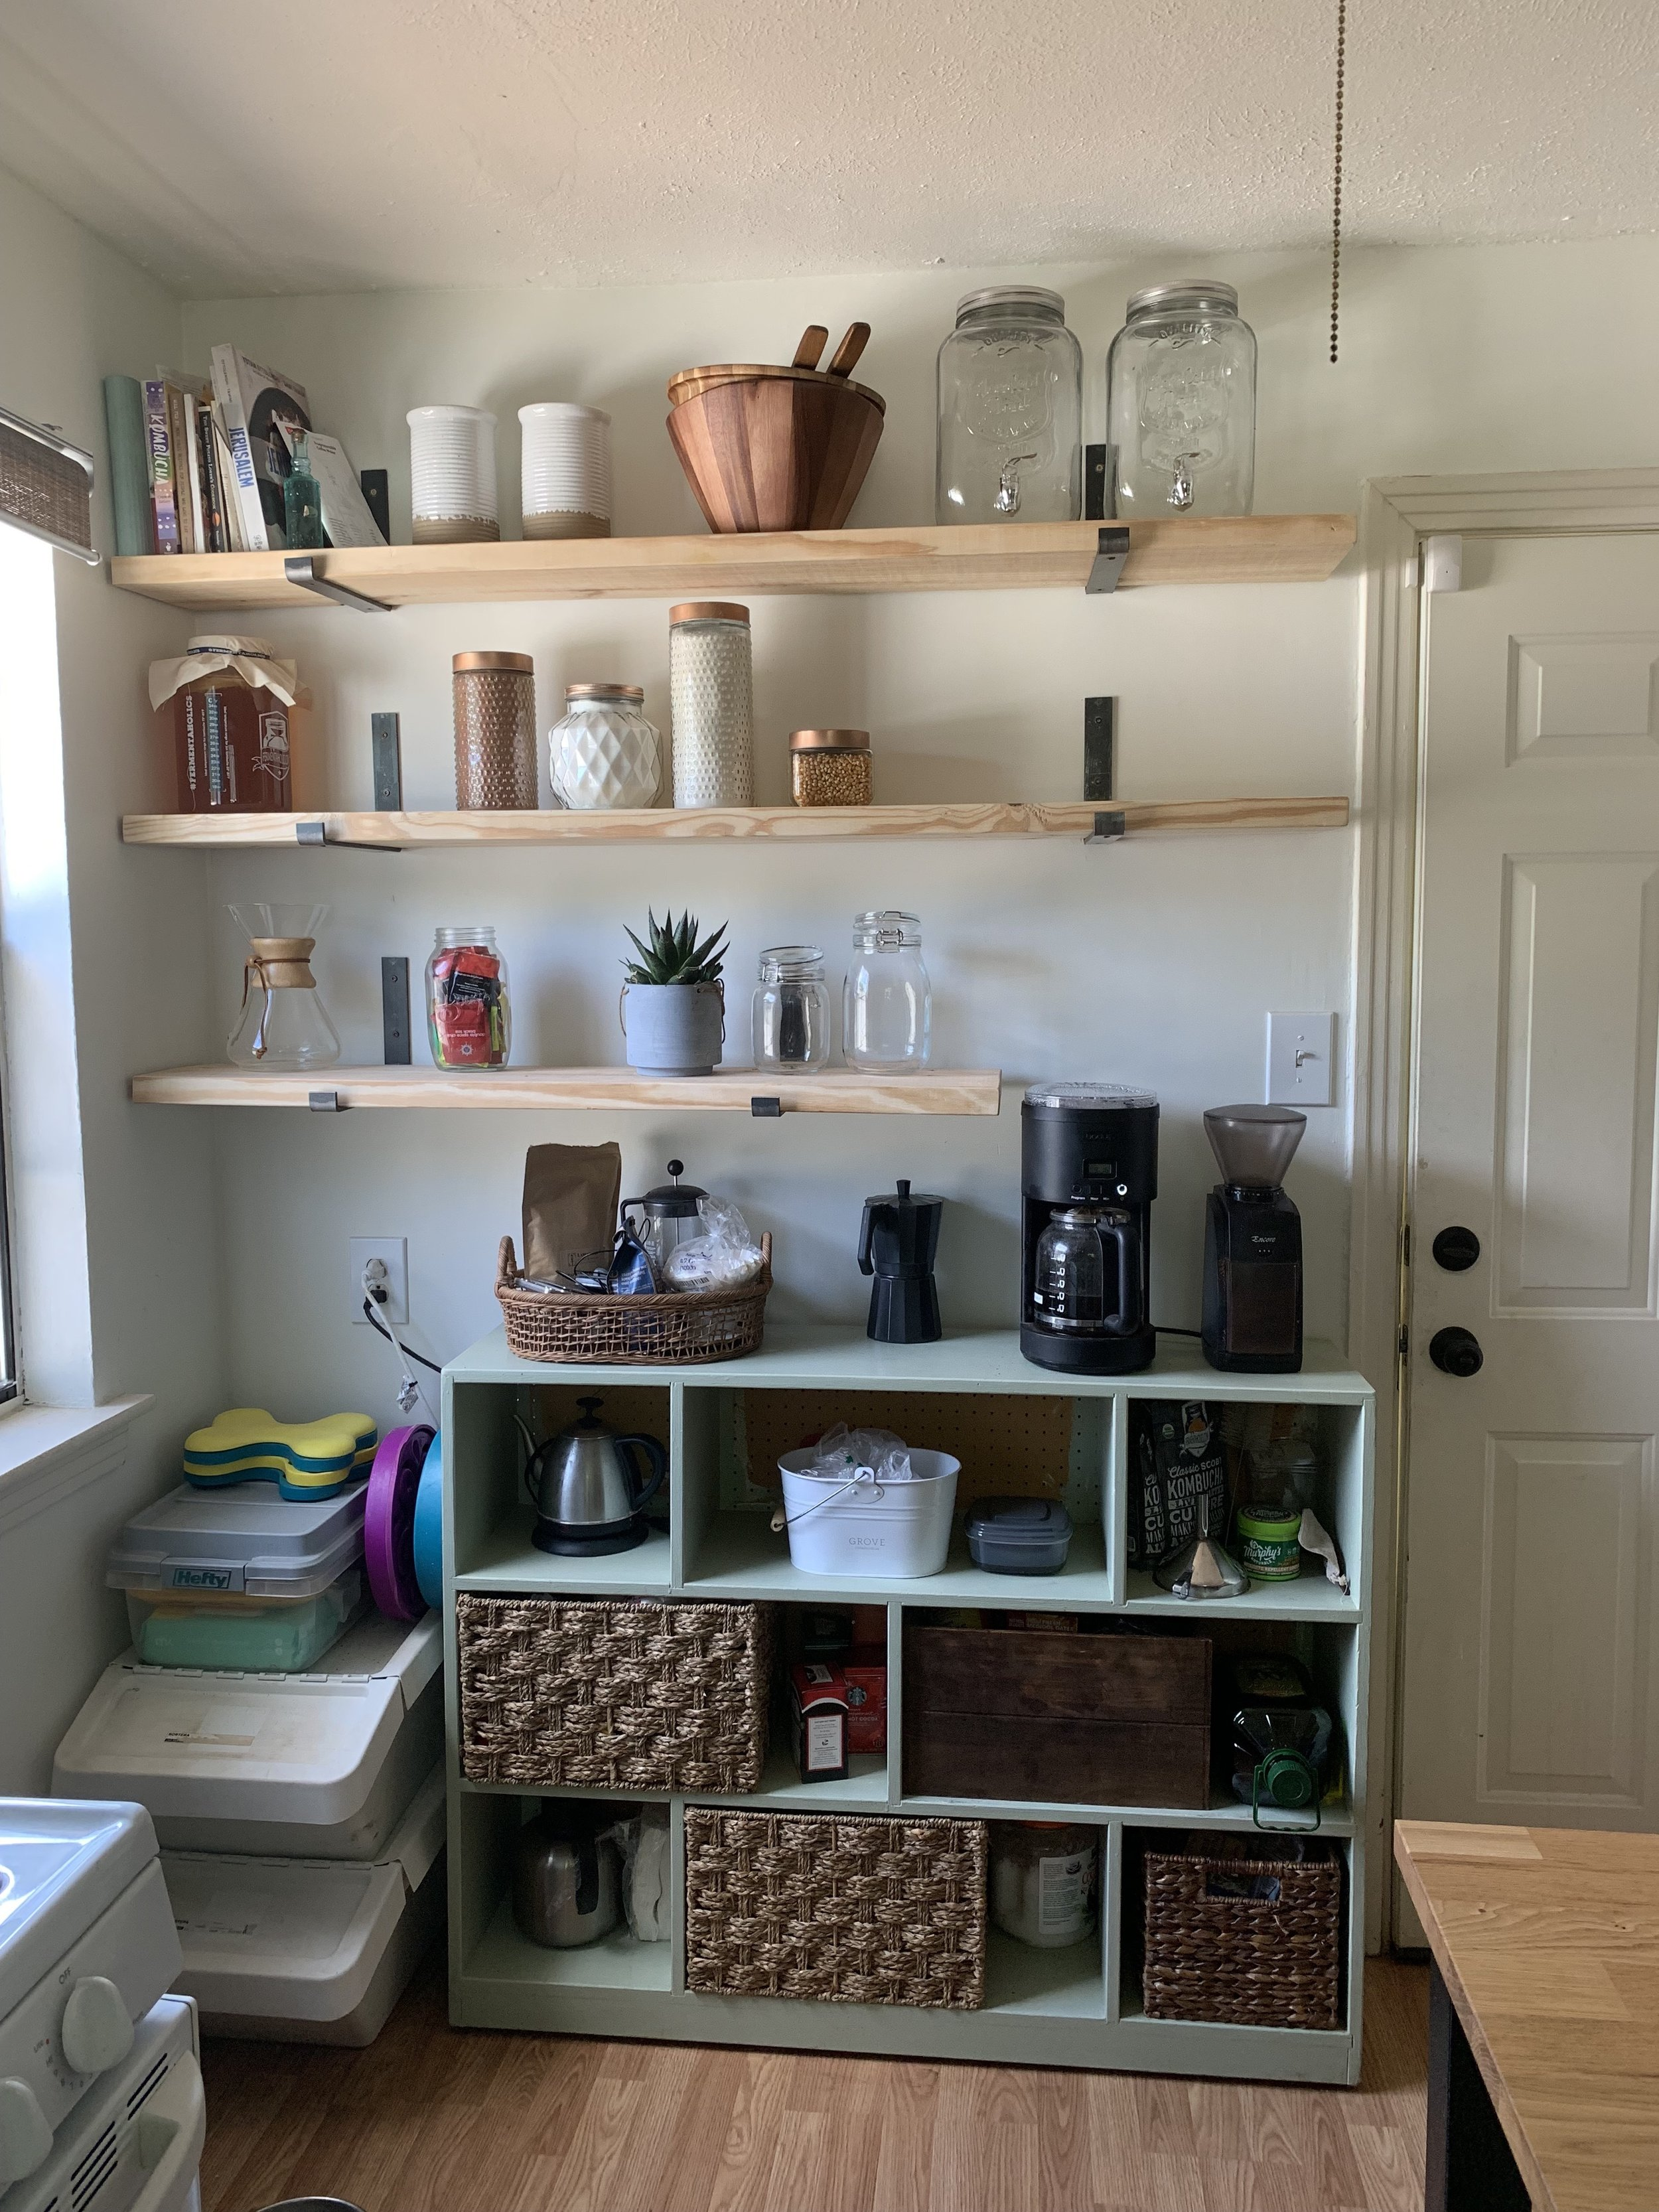 The shelves just went up this week, so I'll be playing with storage and with styling, but MY WORD do I love them. Before, everything was jammed into the green cubes, on the kitchen island, on top of the fridge, and all over the dining table. The raw wood brings a really nice texture to the room.